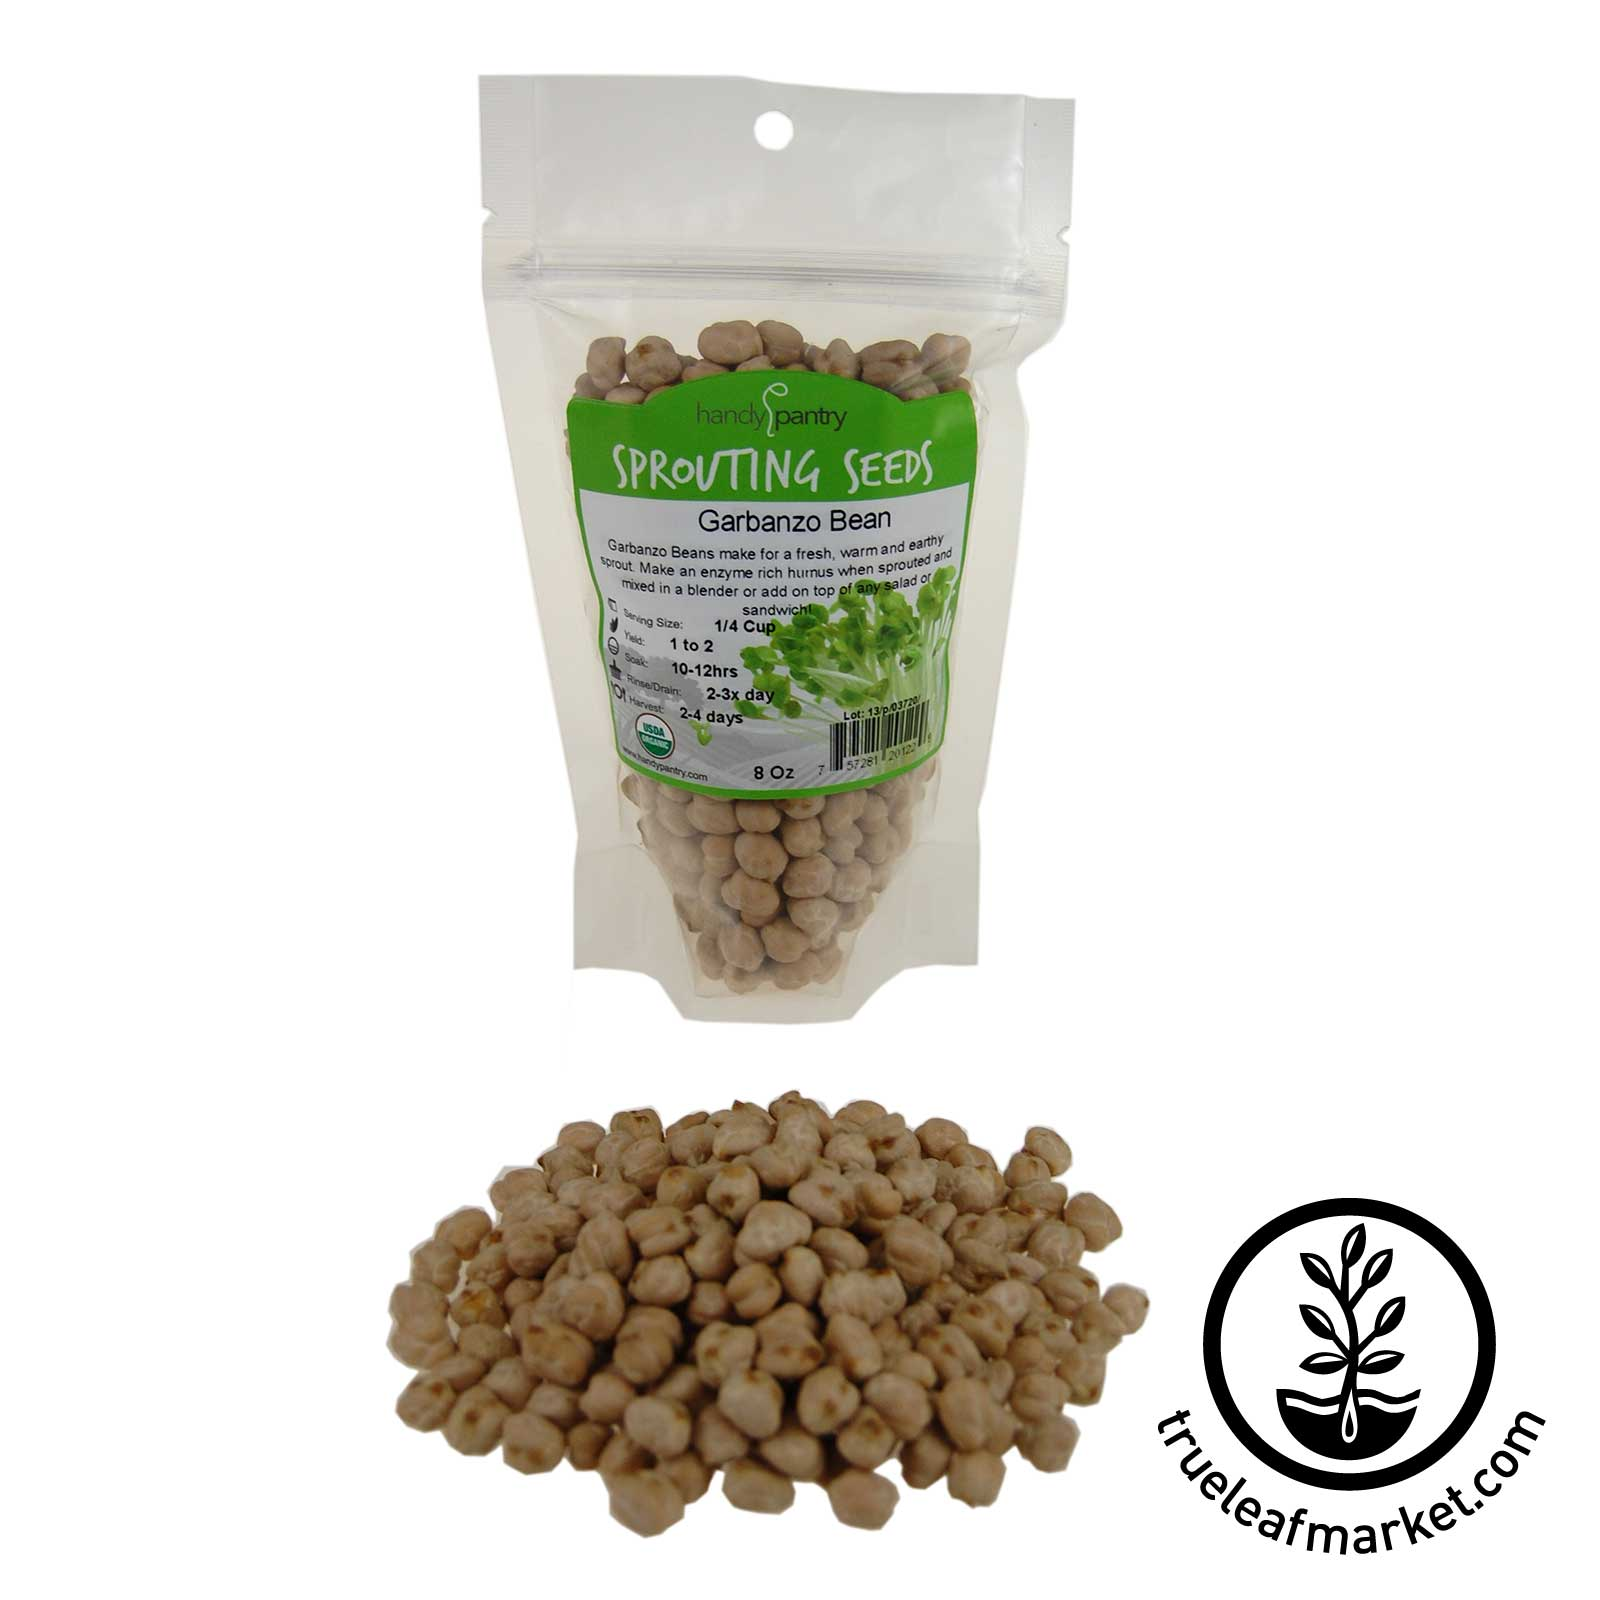 8 Oz - Organic Garbanzo Bean